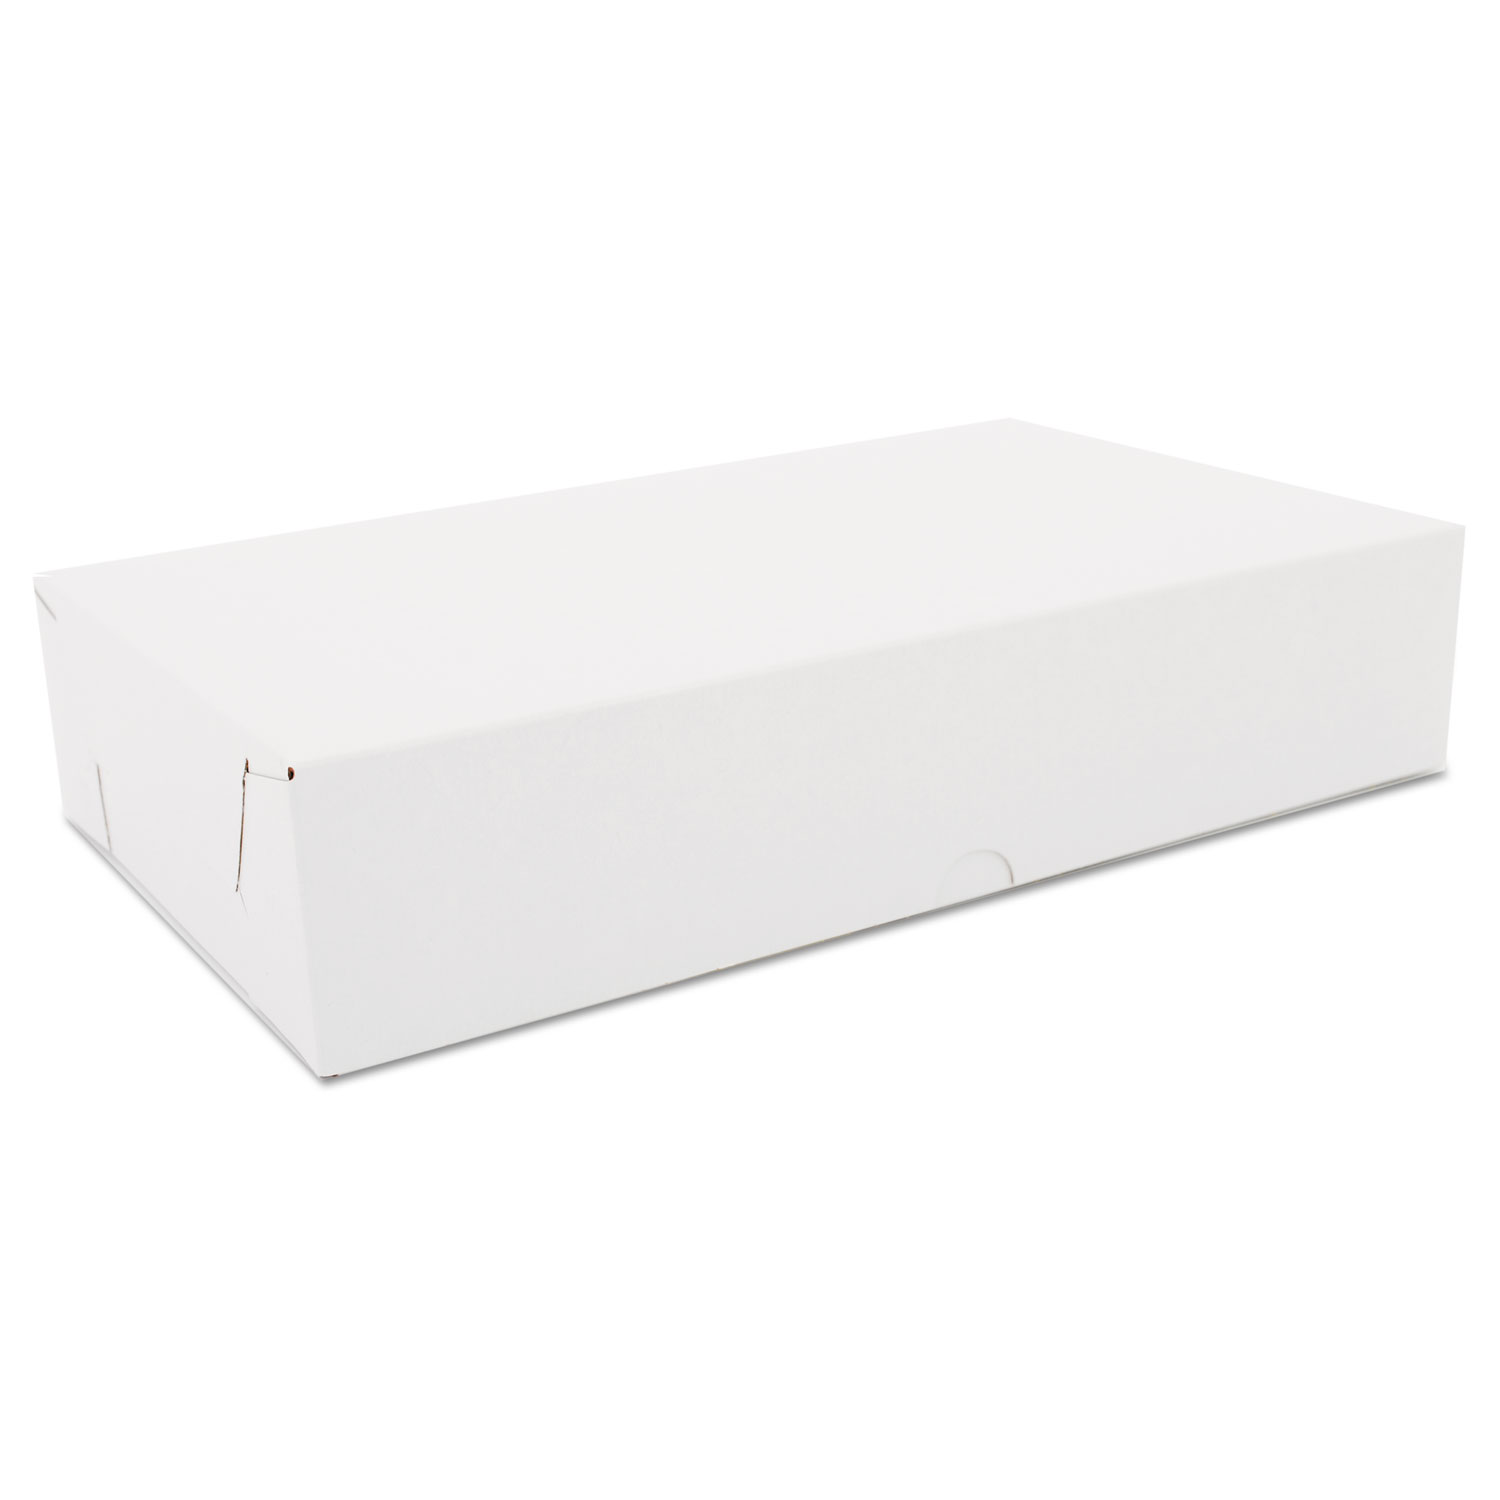 Two-Piece Sausage & Meat-Patty Boxes, Paperboard, 12x7x2 1/2, White, 100/CT